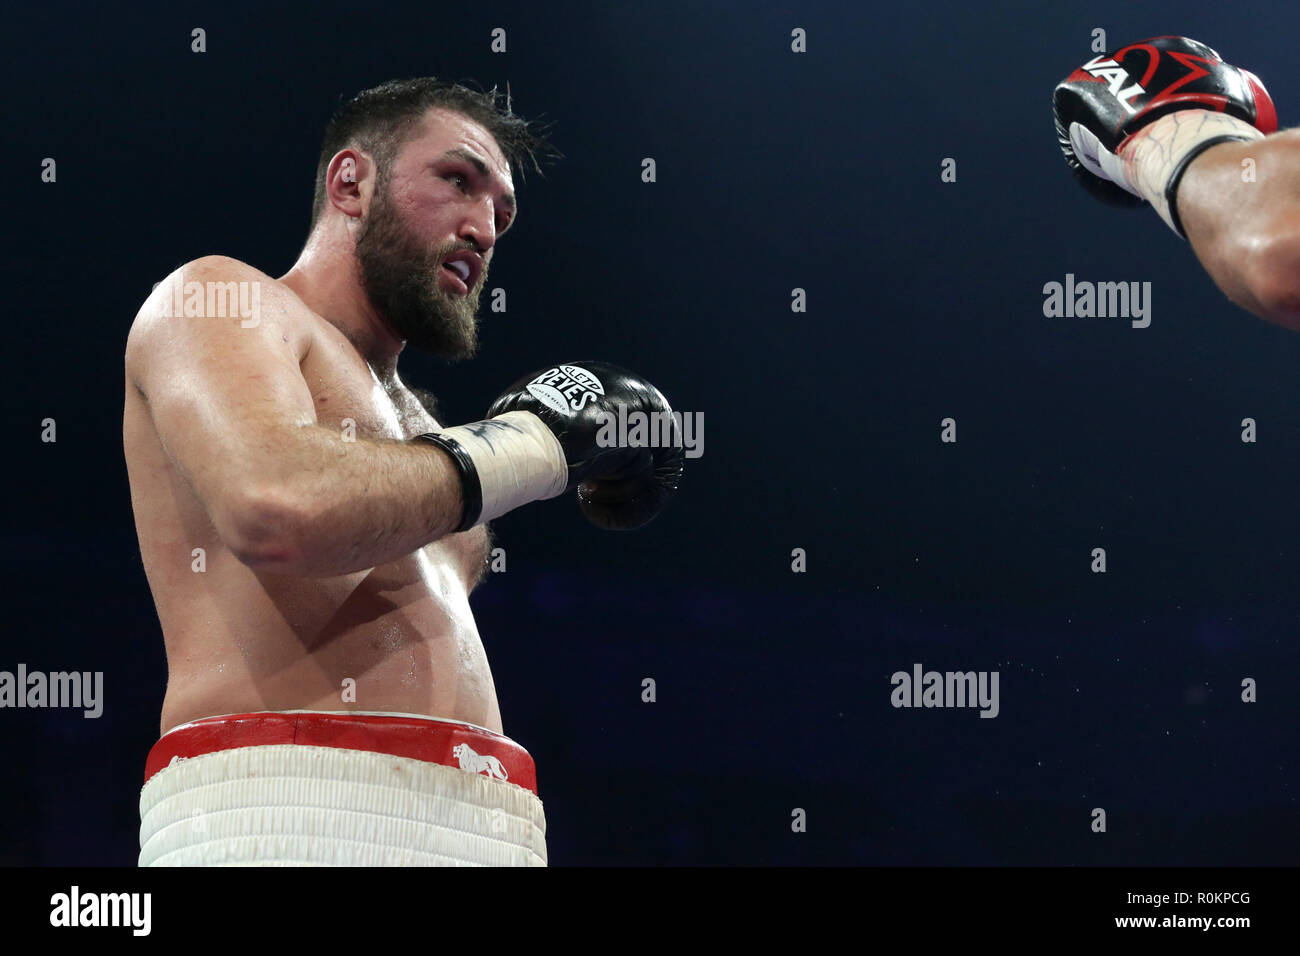 Sofia, Bulgaria - 27 October 2018: Boxing match between Kubrat 'Cobra' Pulev and Hughie Fury (pictured) for IBF Heavyweight elimination bout. - Stock Image